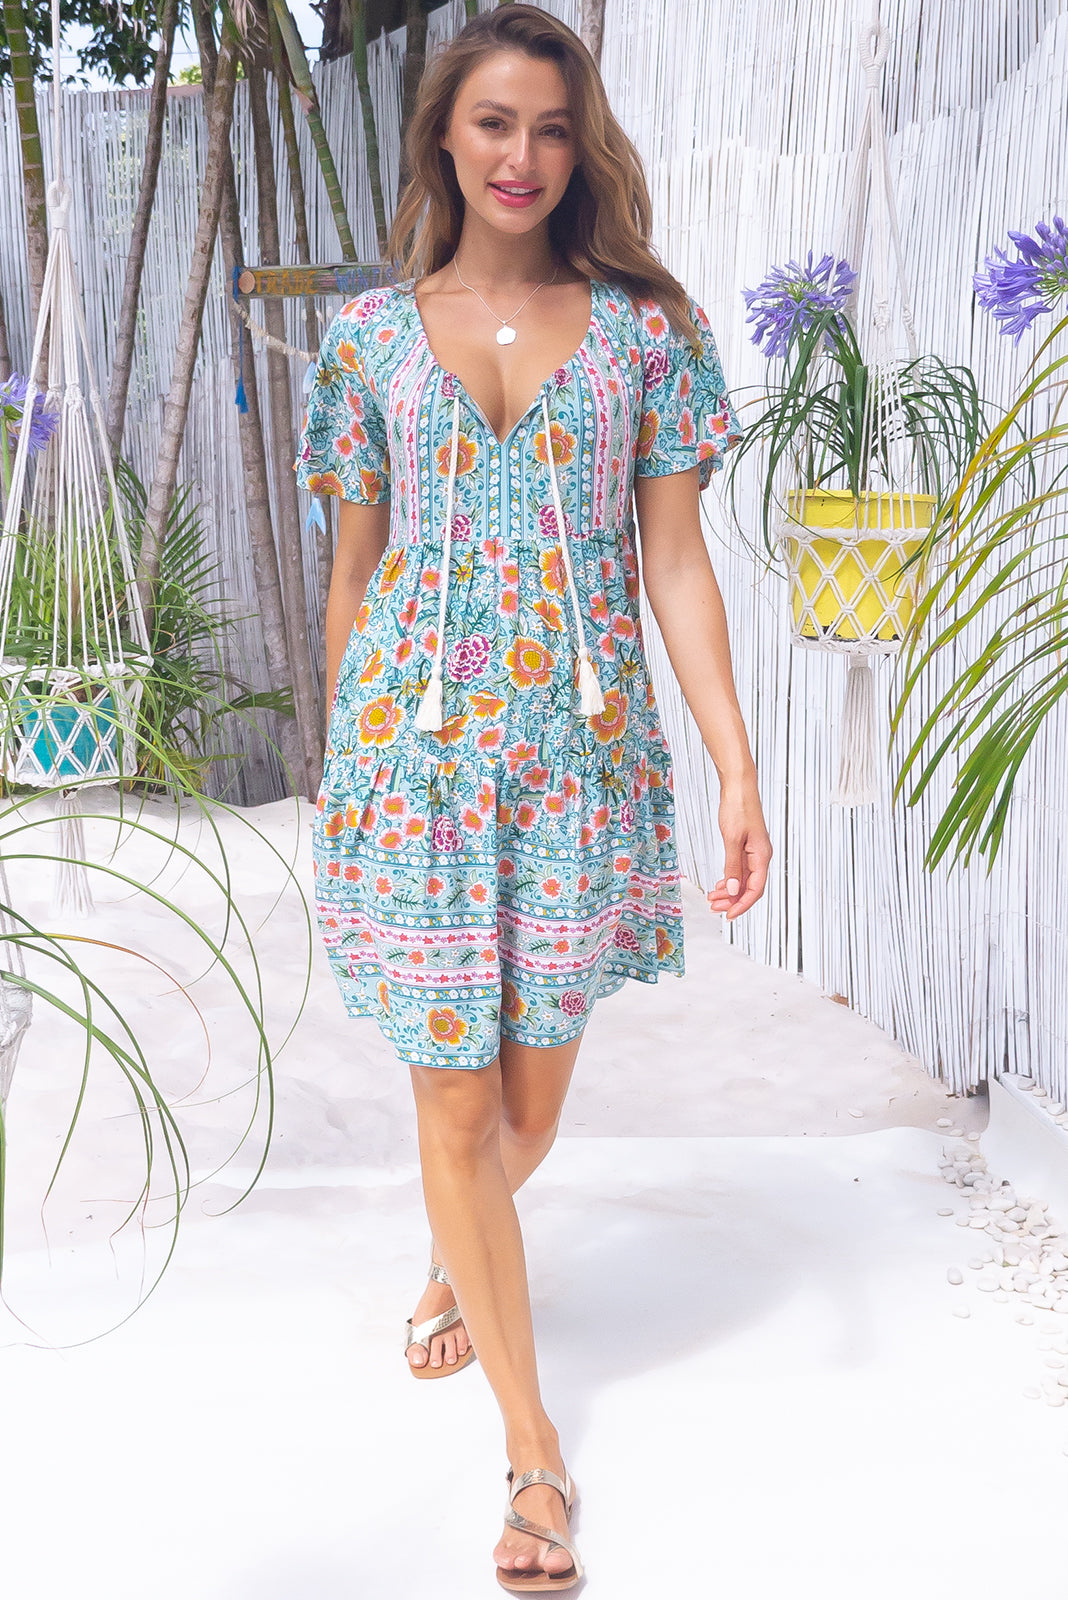 The Viva Mint Tea Dress features adjustable neckline with tassel ended ties, elasticated back of neckline, flutter sleeves, side pockets, tiered skirt and 100% rayon in mint base with pink, green and amber floral print as well as border feature on chest and hem.